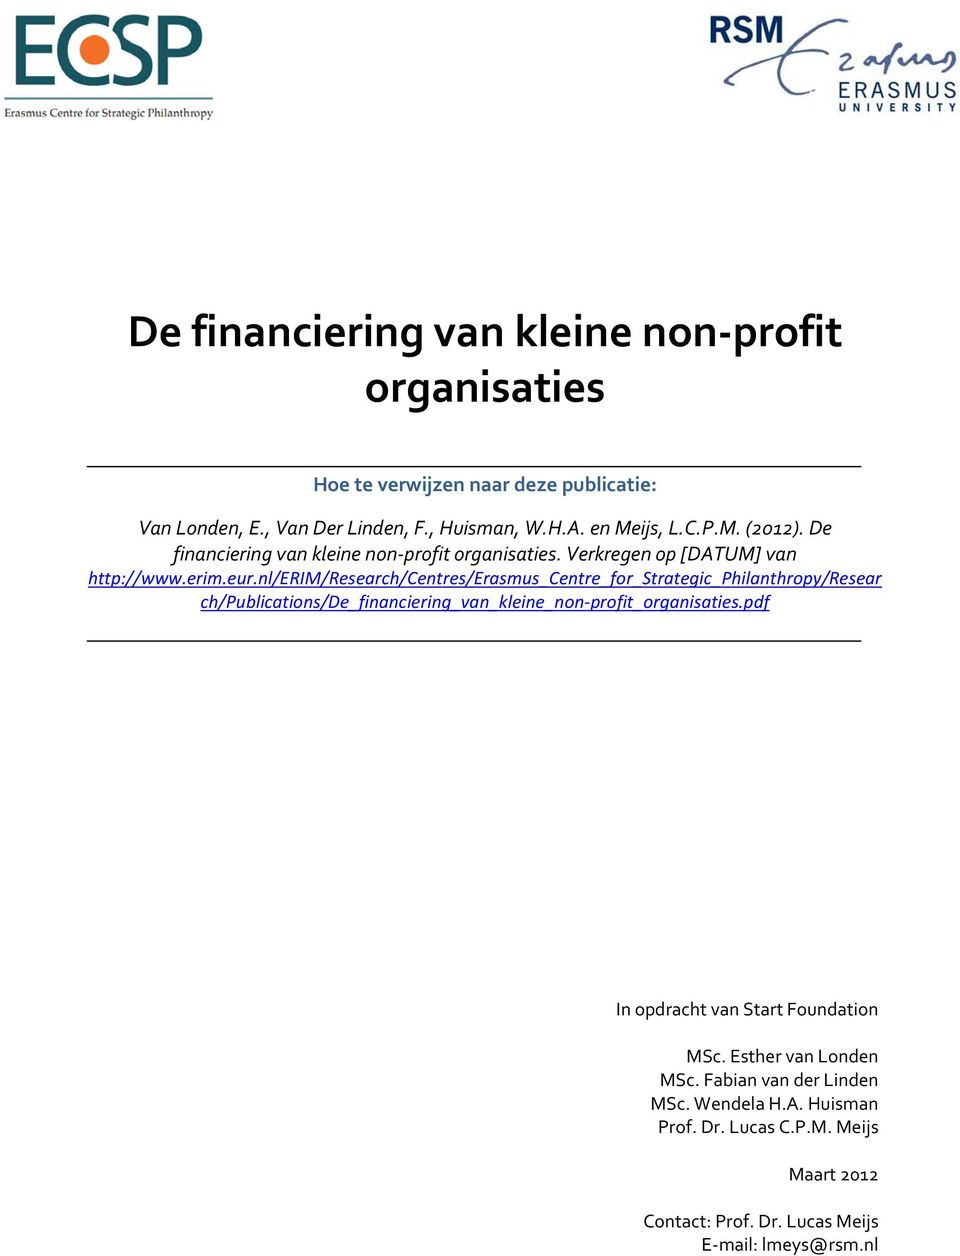 nl/erim/research/centres/erasmus_centre_for_strategic_philanthropy/resear ch/publications/de_financiering_van_kleine_non profit_organisaties.